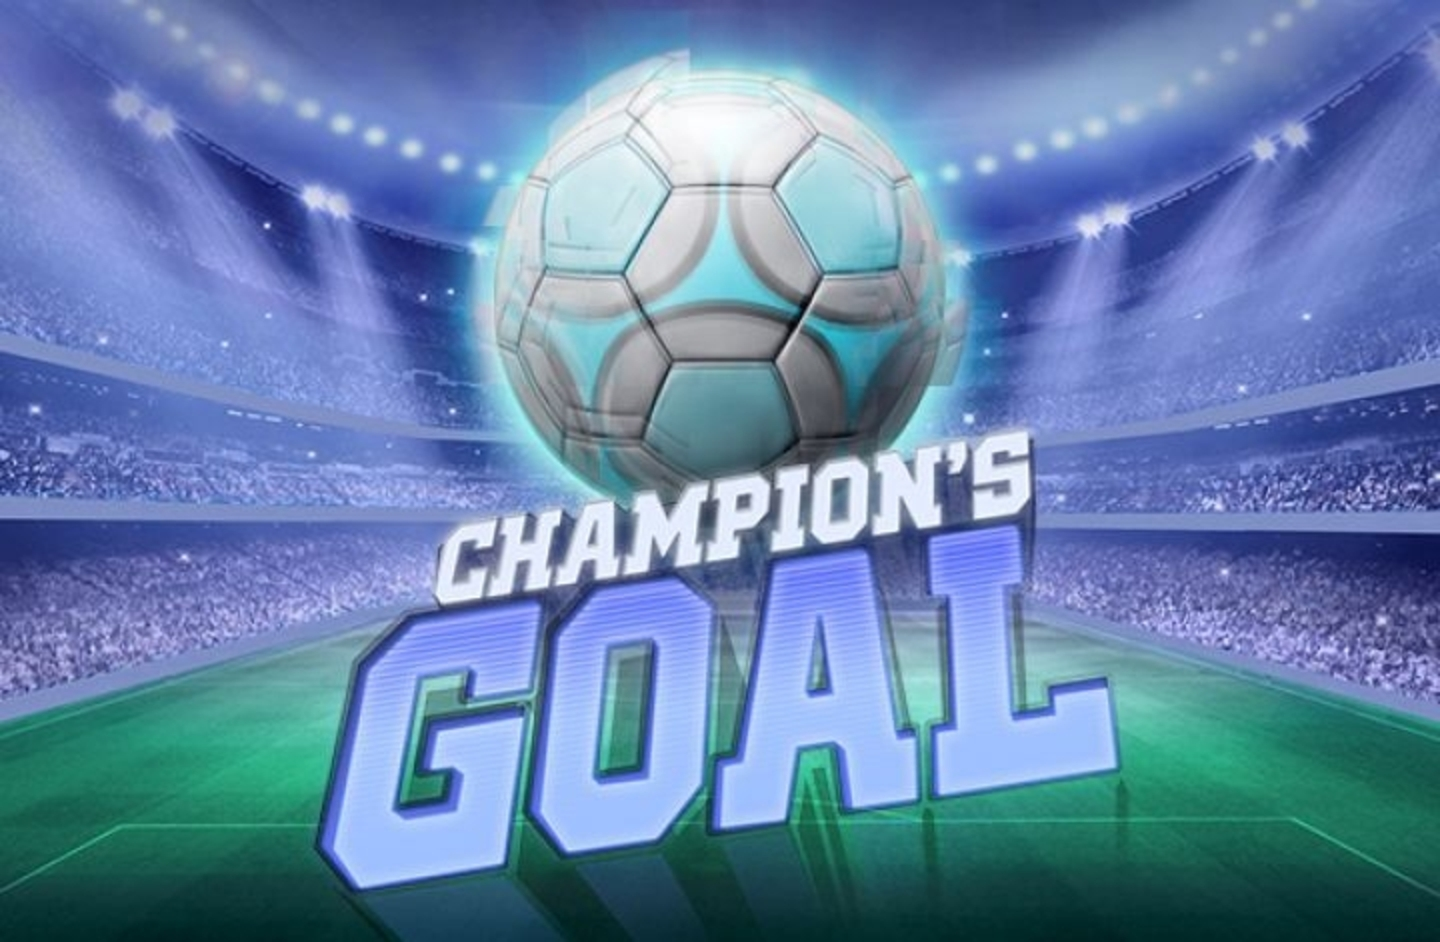 Champion's Goal Online Slot Demo Game by ELK Studios